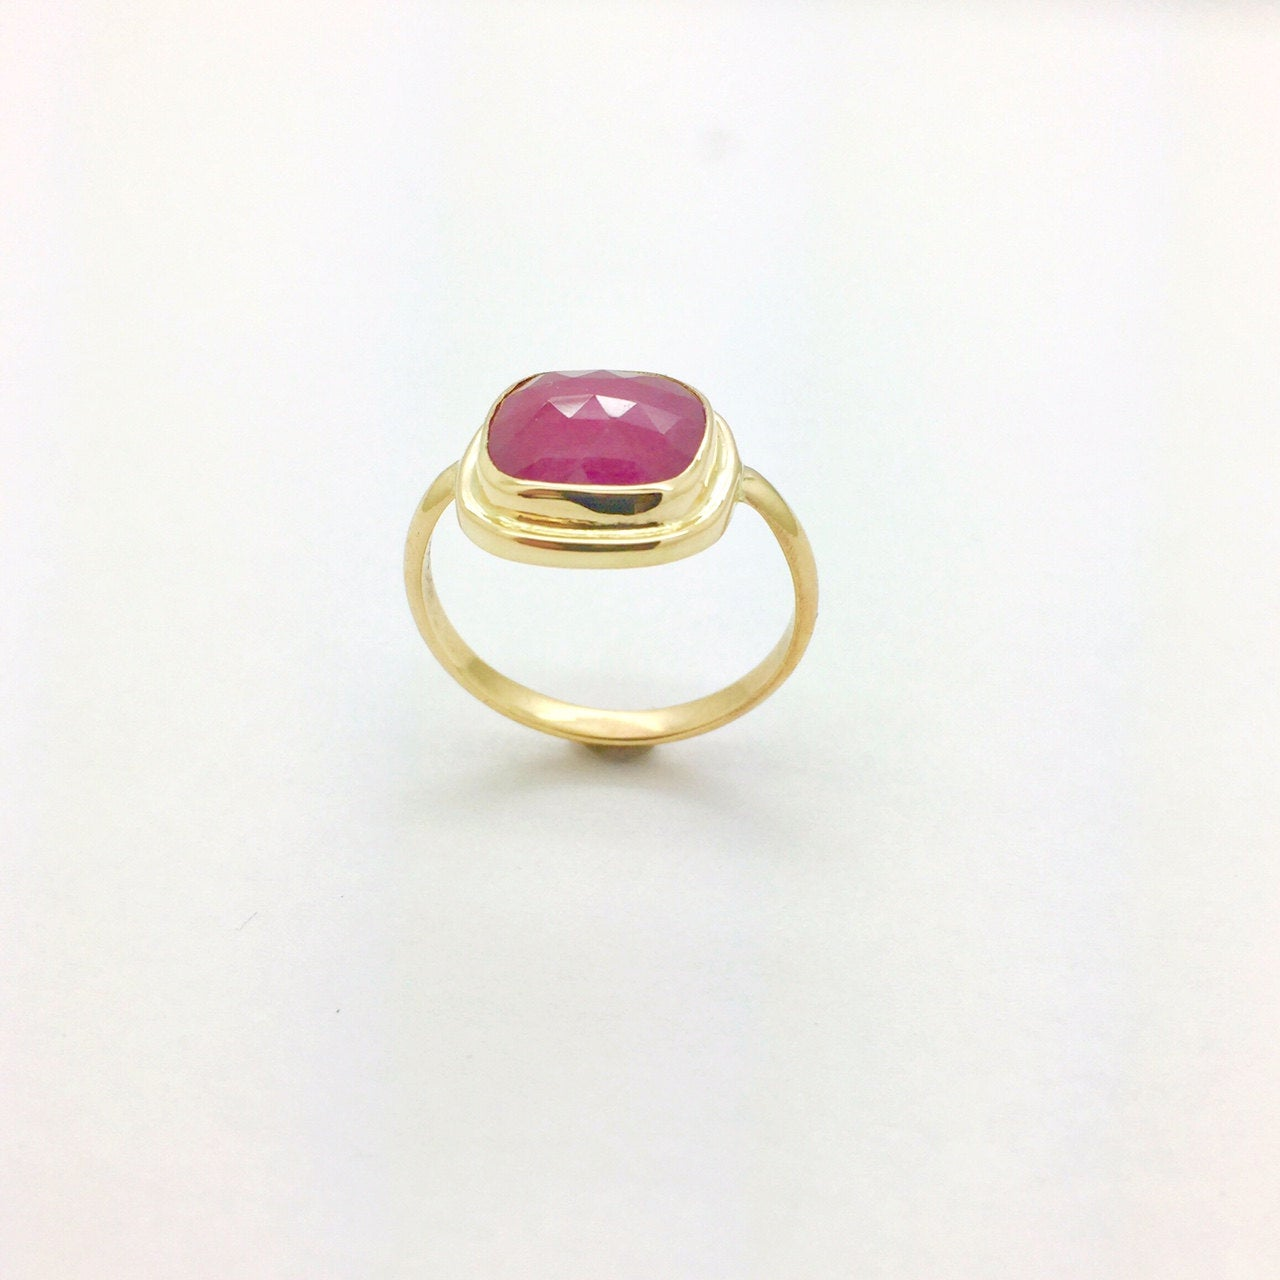 Ruby ring in 14k Gold, Rose cut  Ruby Statement Ring, Gold ring with Faceted Ruby